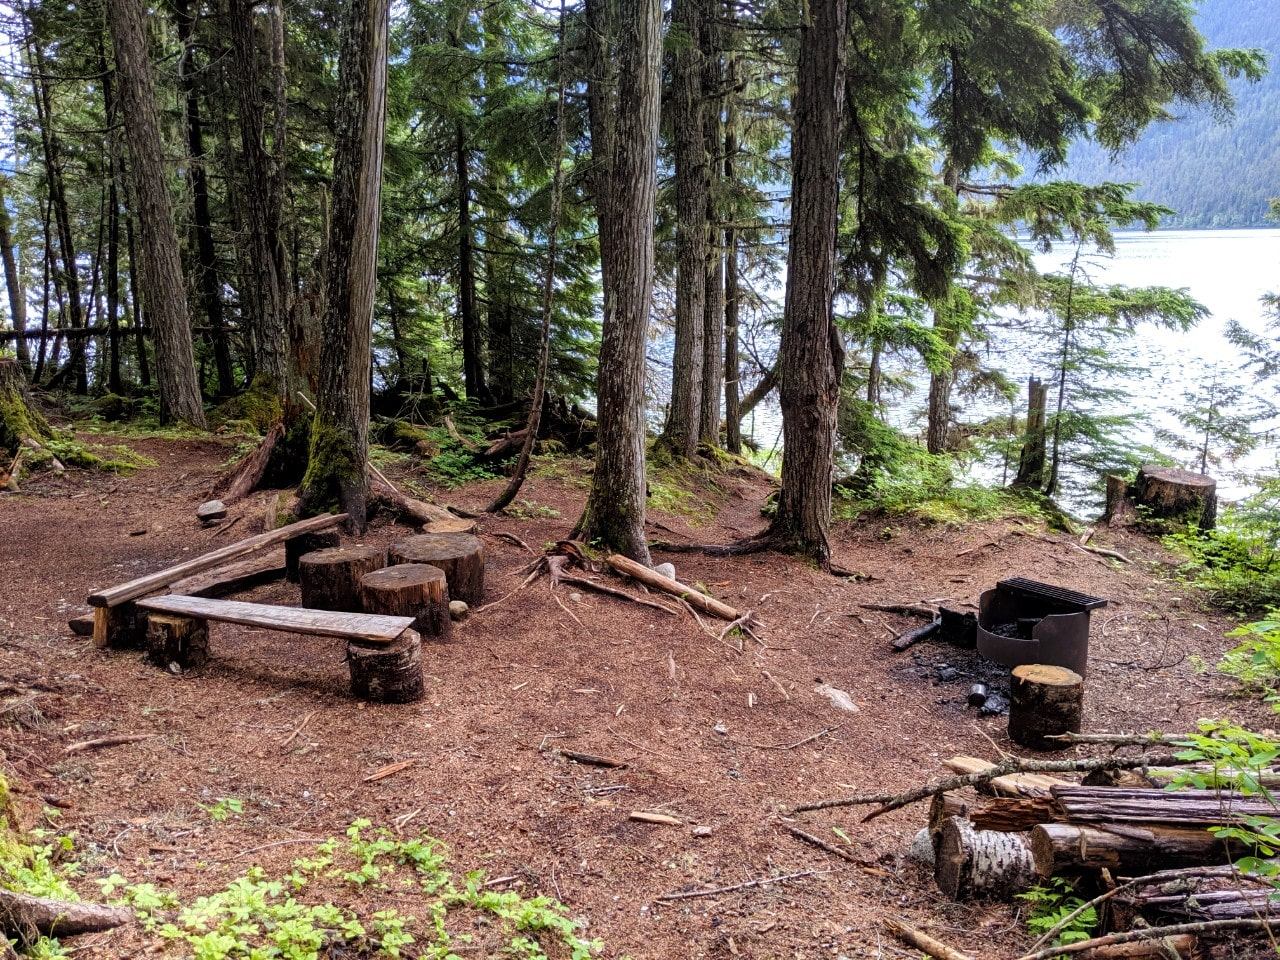 Cleared area at edge of forest with firepit and log tables and chairs